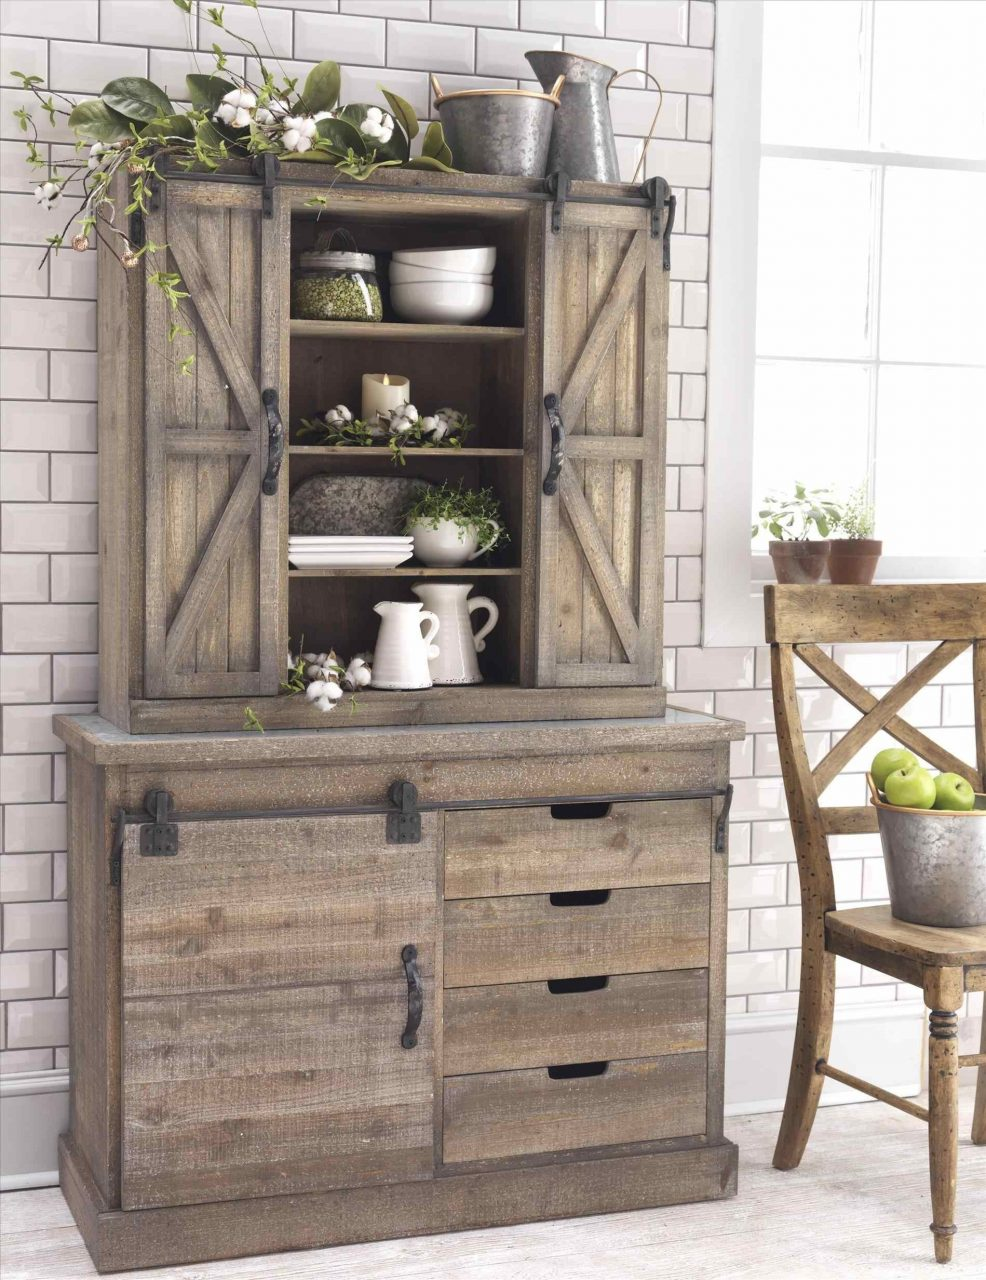 Dining Room Hutch Plans Fine New 25 Dining Room Hutch Plans Ideas